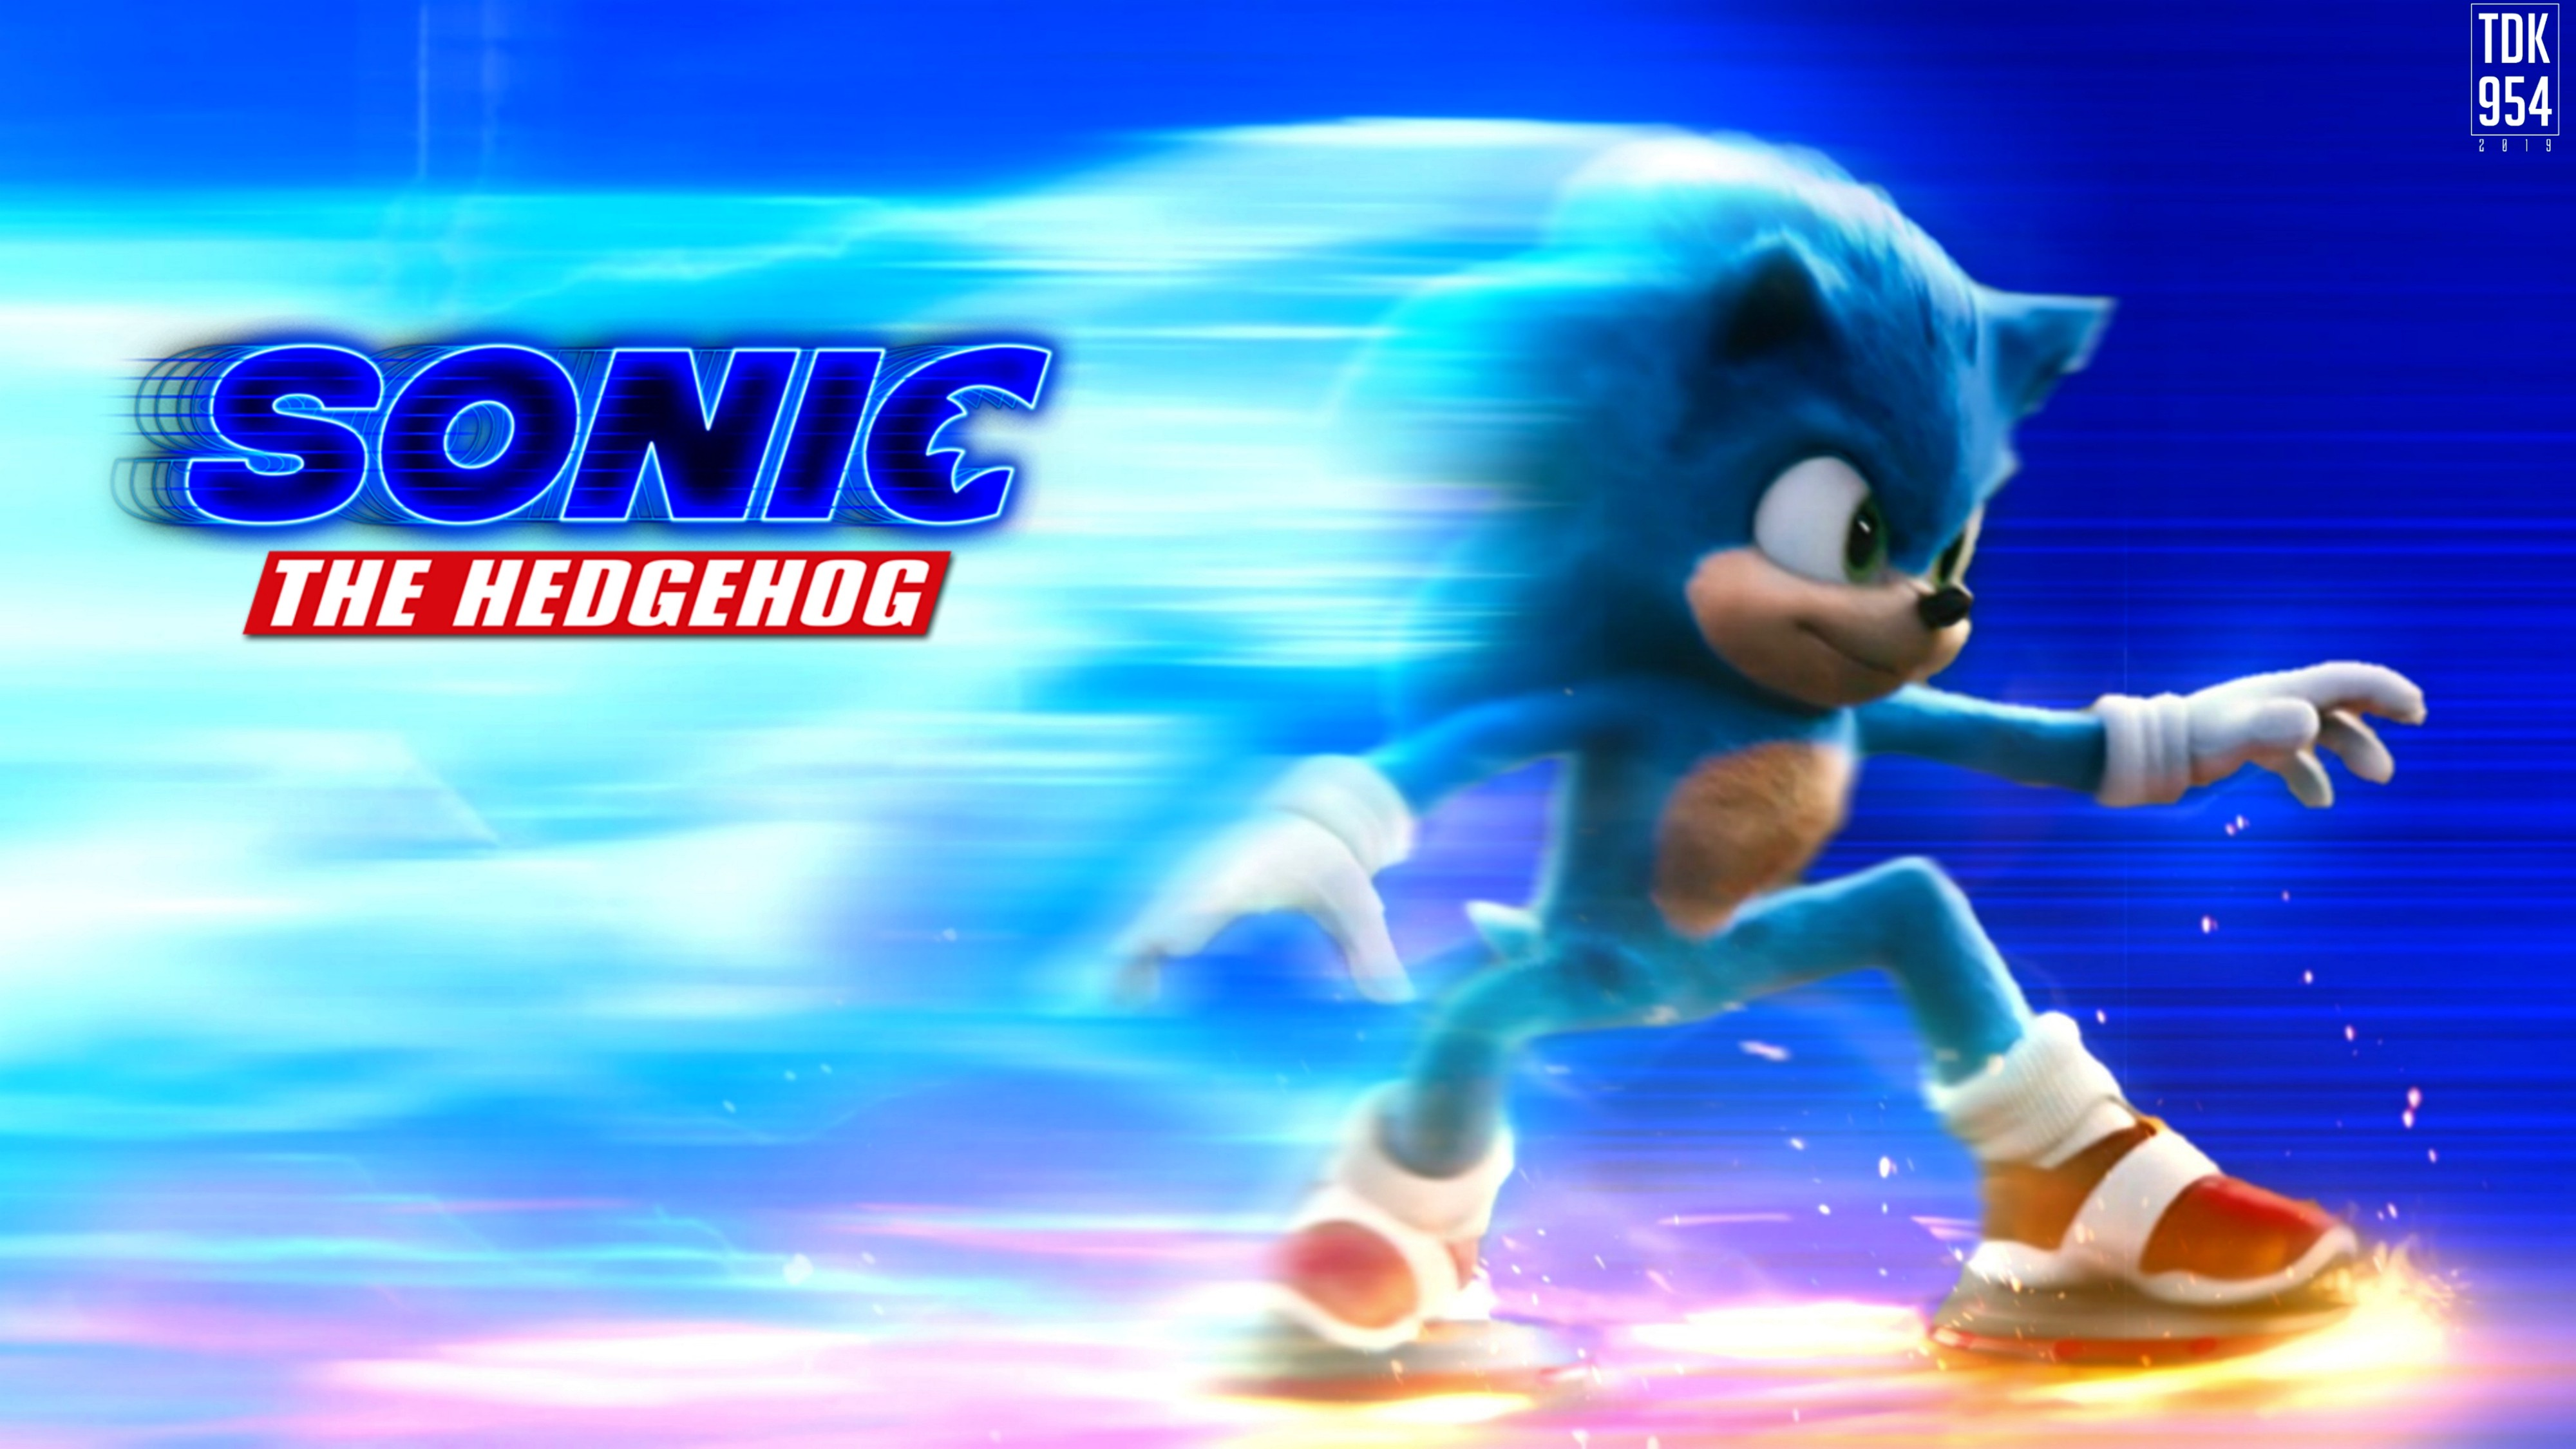 Movie Review Sonic The Hedgehog By Patrick Coyle Simmons Medium